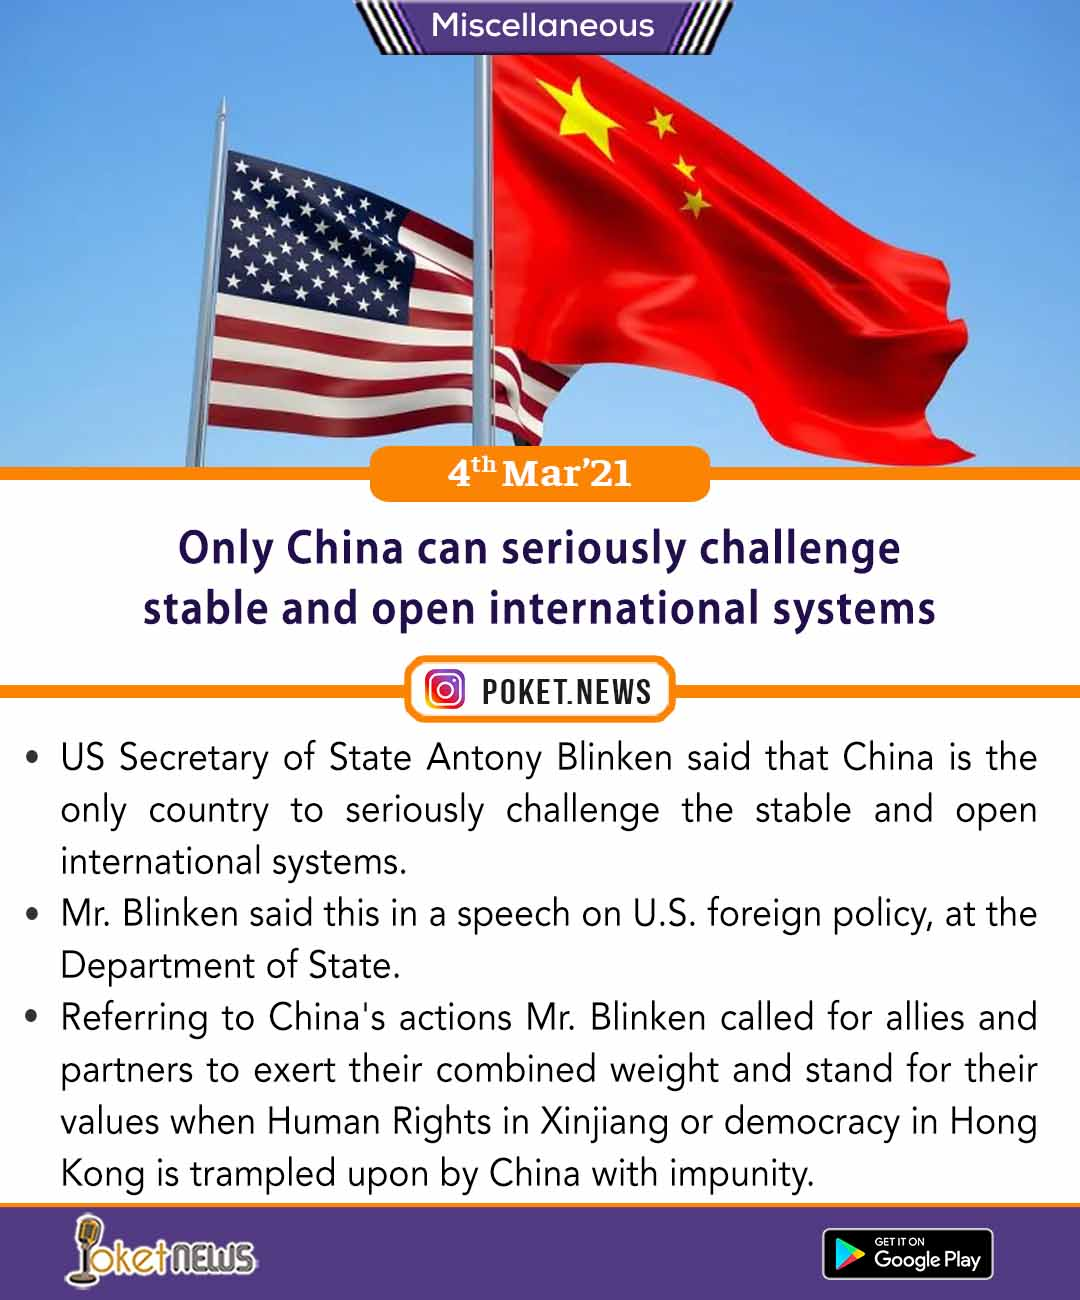 Only China can seriously challenge stable and open international systems